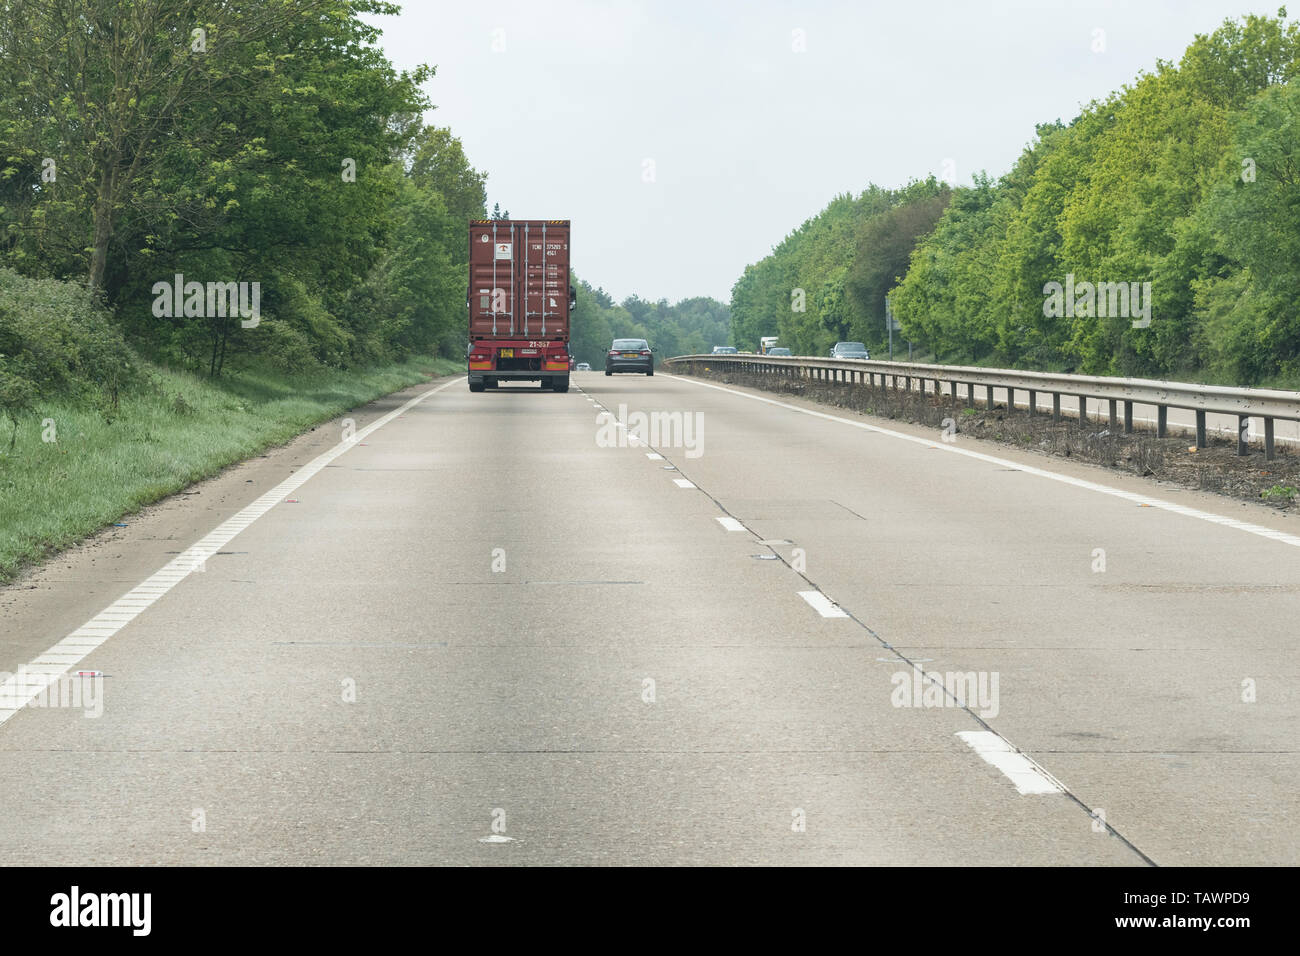 Concrete road surface on a section of the A14  trunk road in England, UK - Stock Image